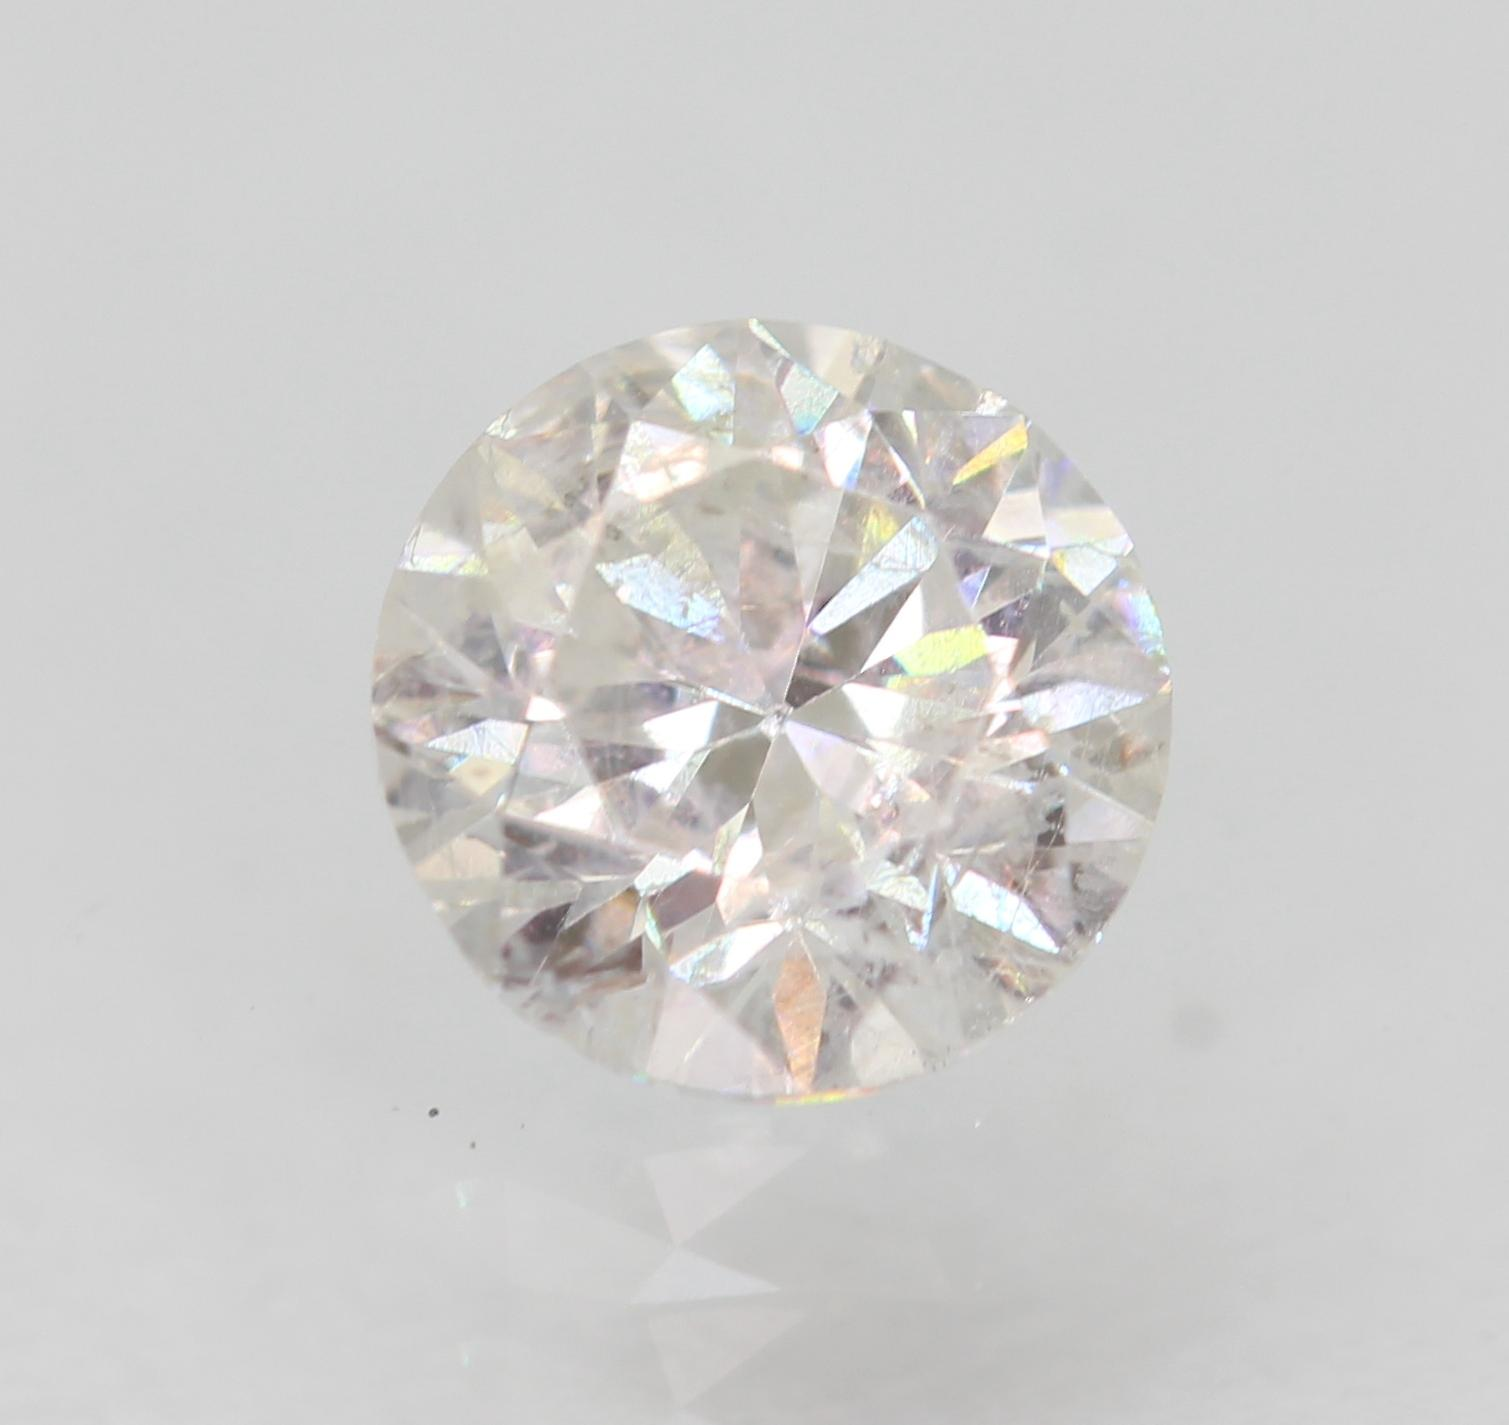 Certified 0.52 Carat F SI2 Round Brilliant Enhanced Natural Loose Diamond 5.03mm